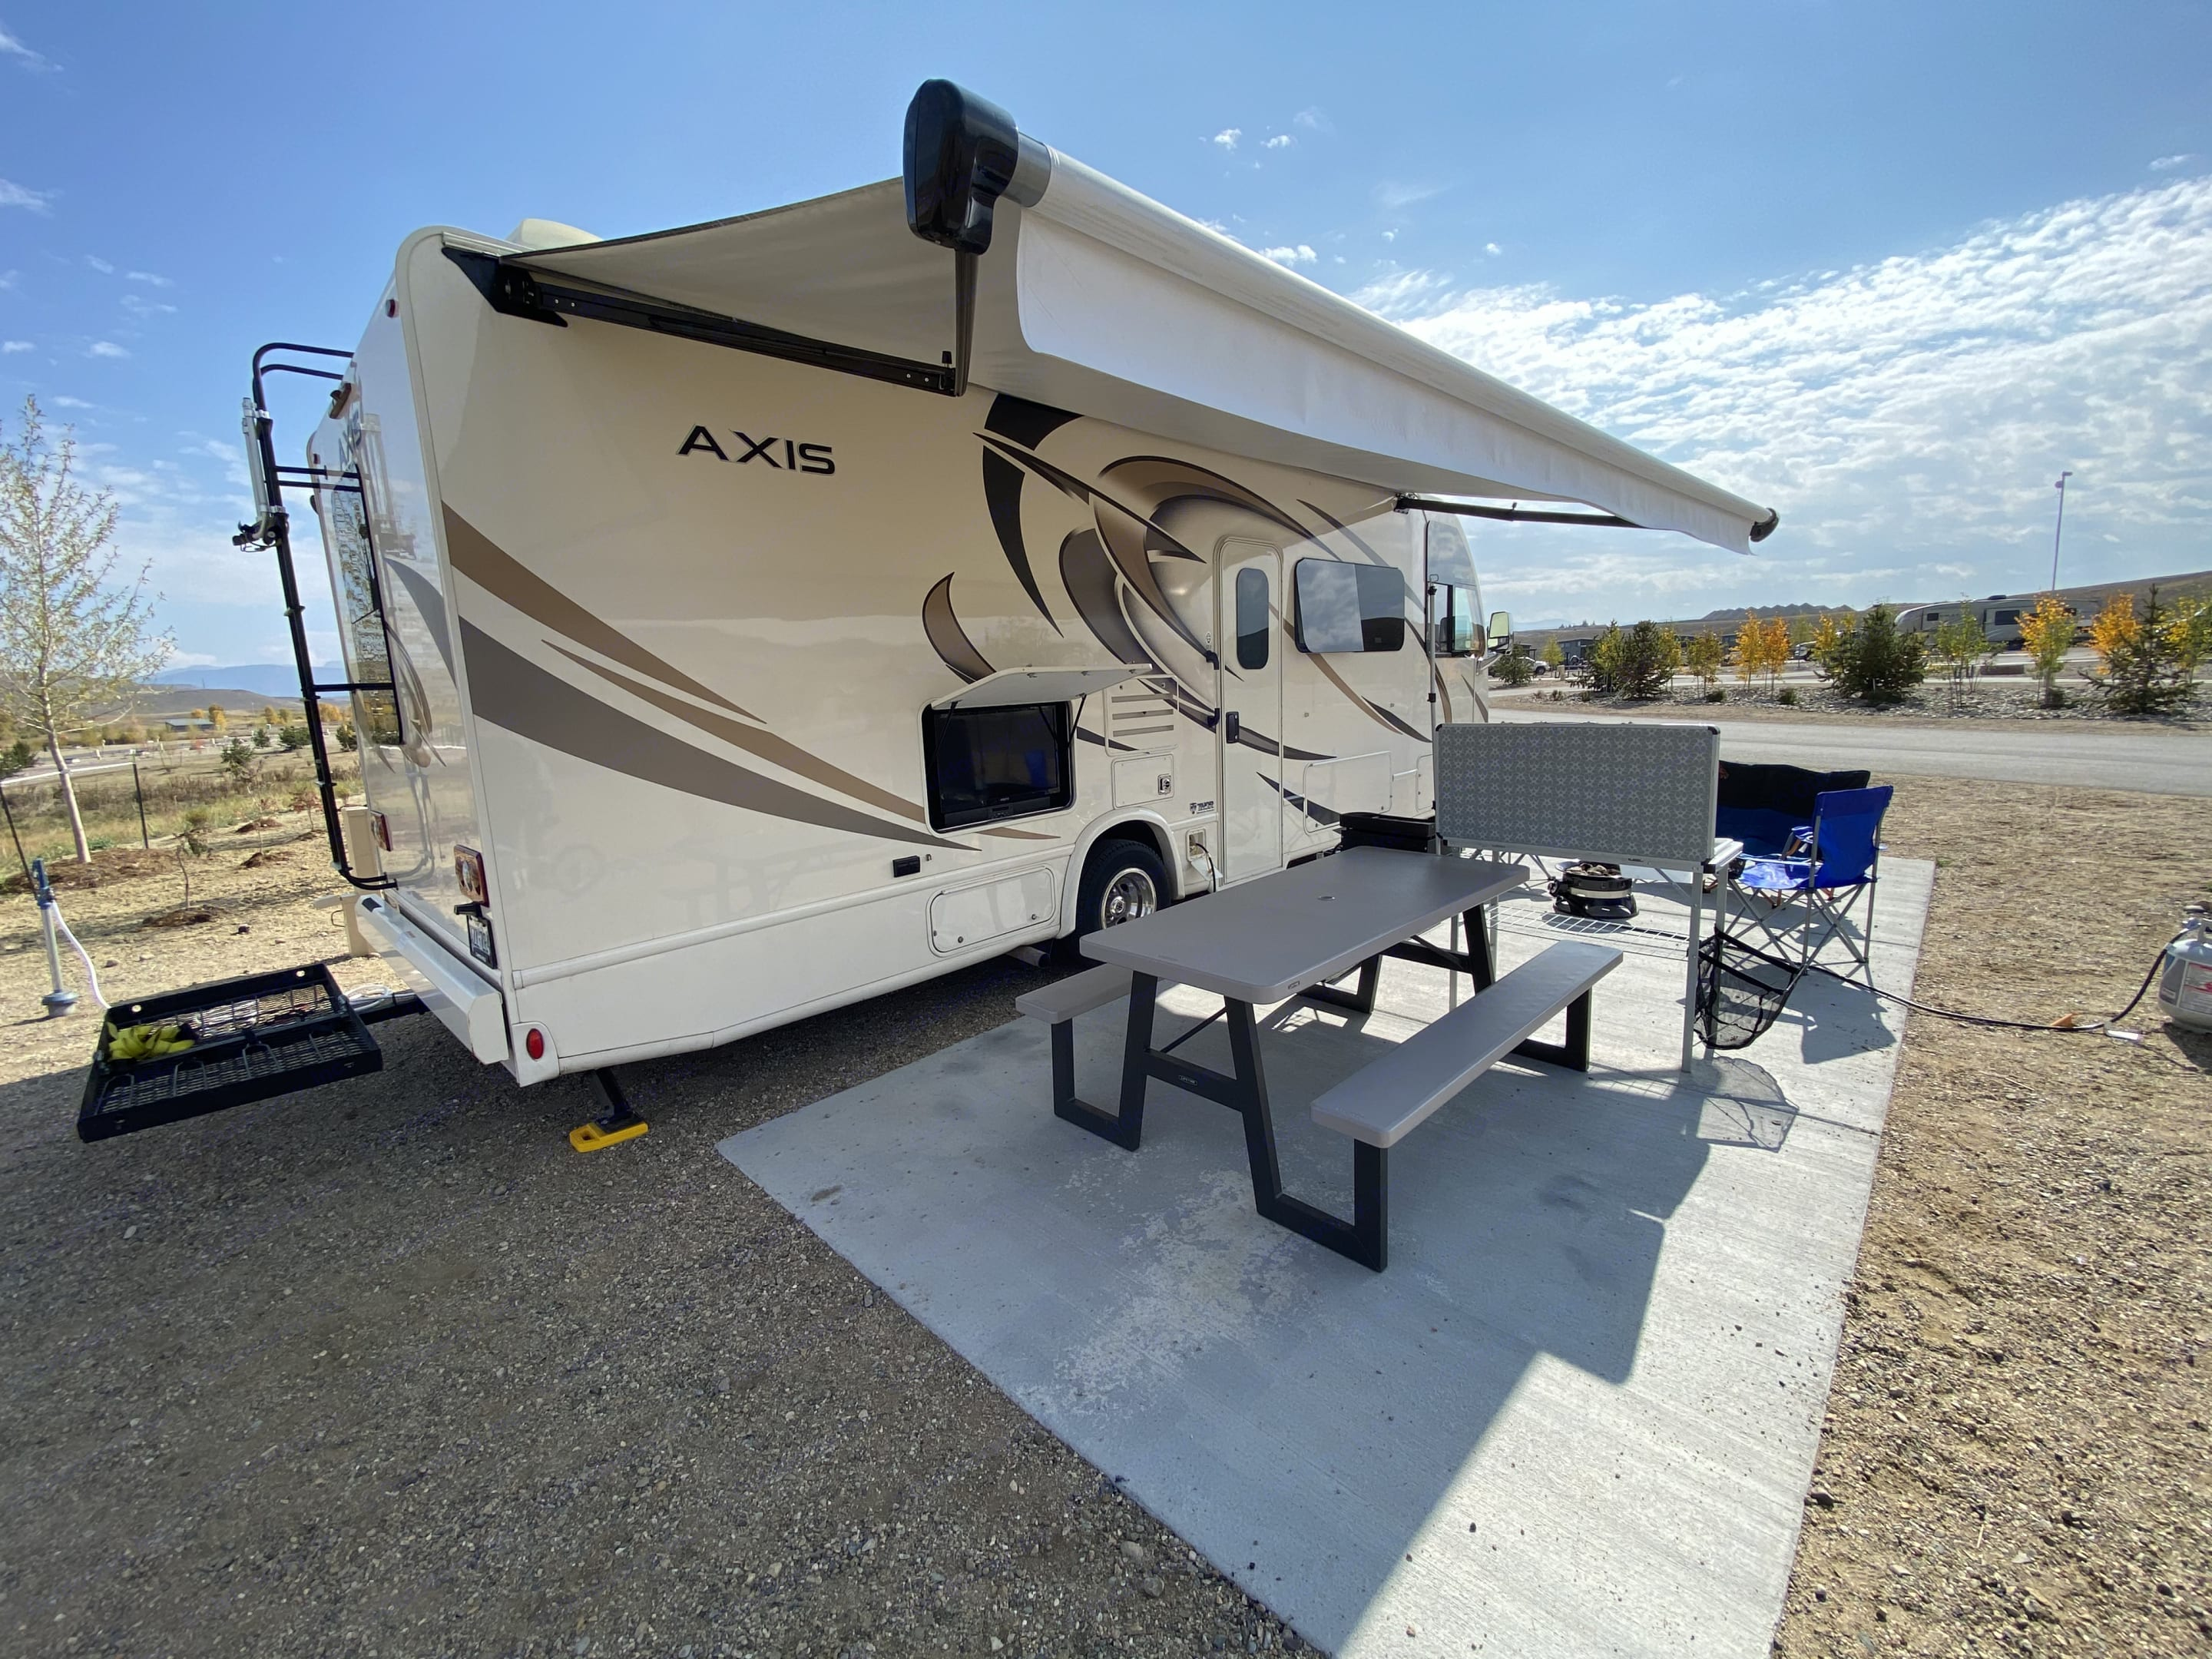 Electric awning provides nice shade and it includes a wind sensor in case you leave it out!. Thor Motor Coach Axis 2019